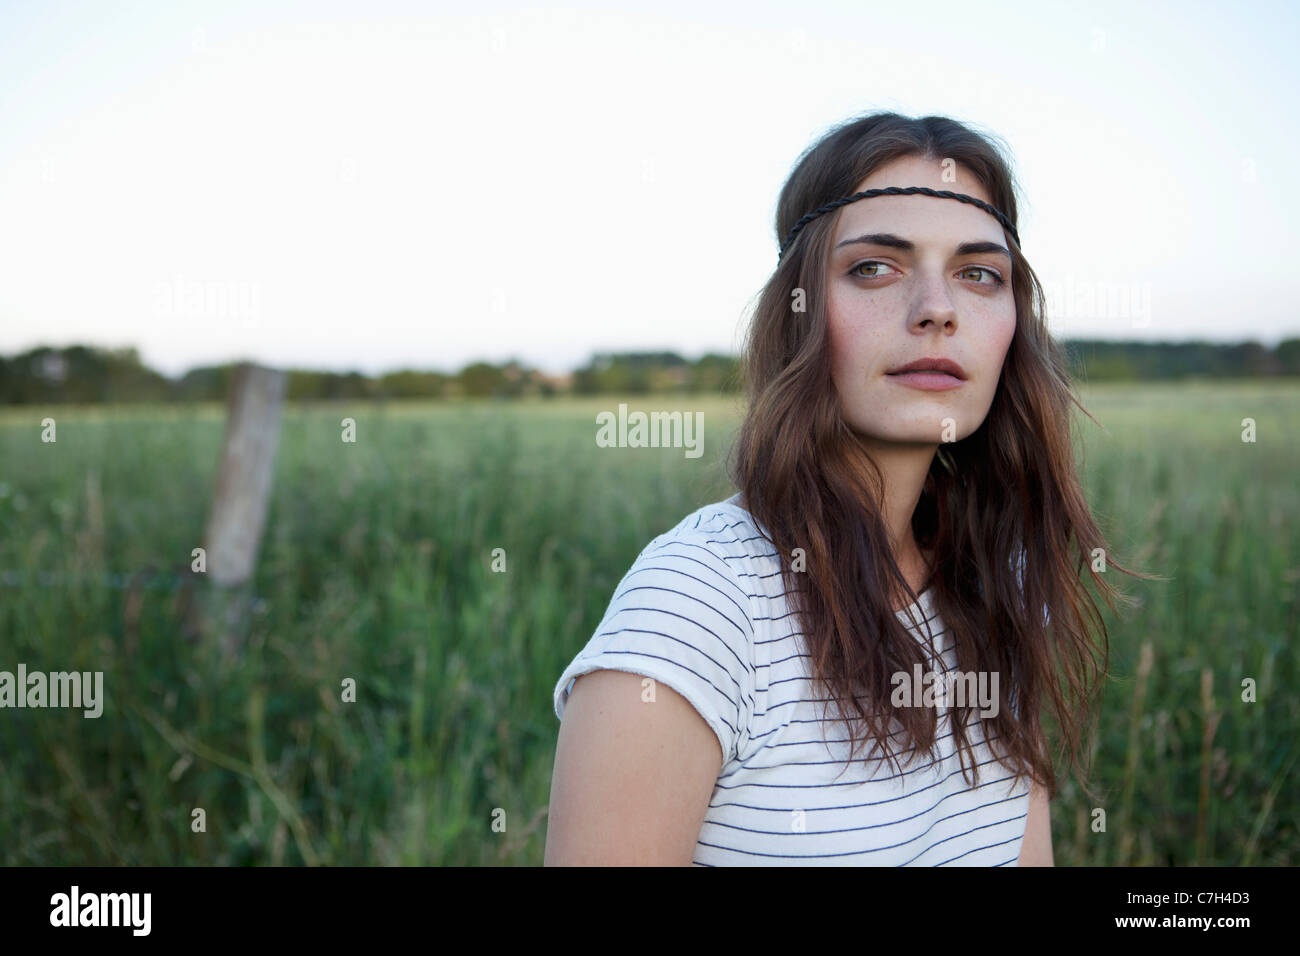 Profile of girl with hair band standing in field looking to the side - Stock Image